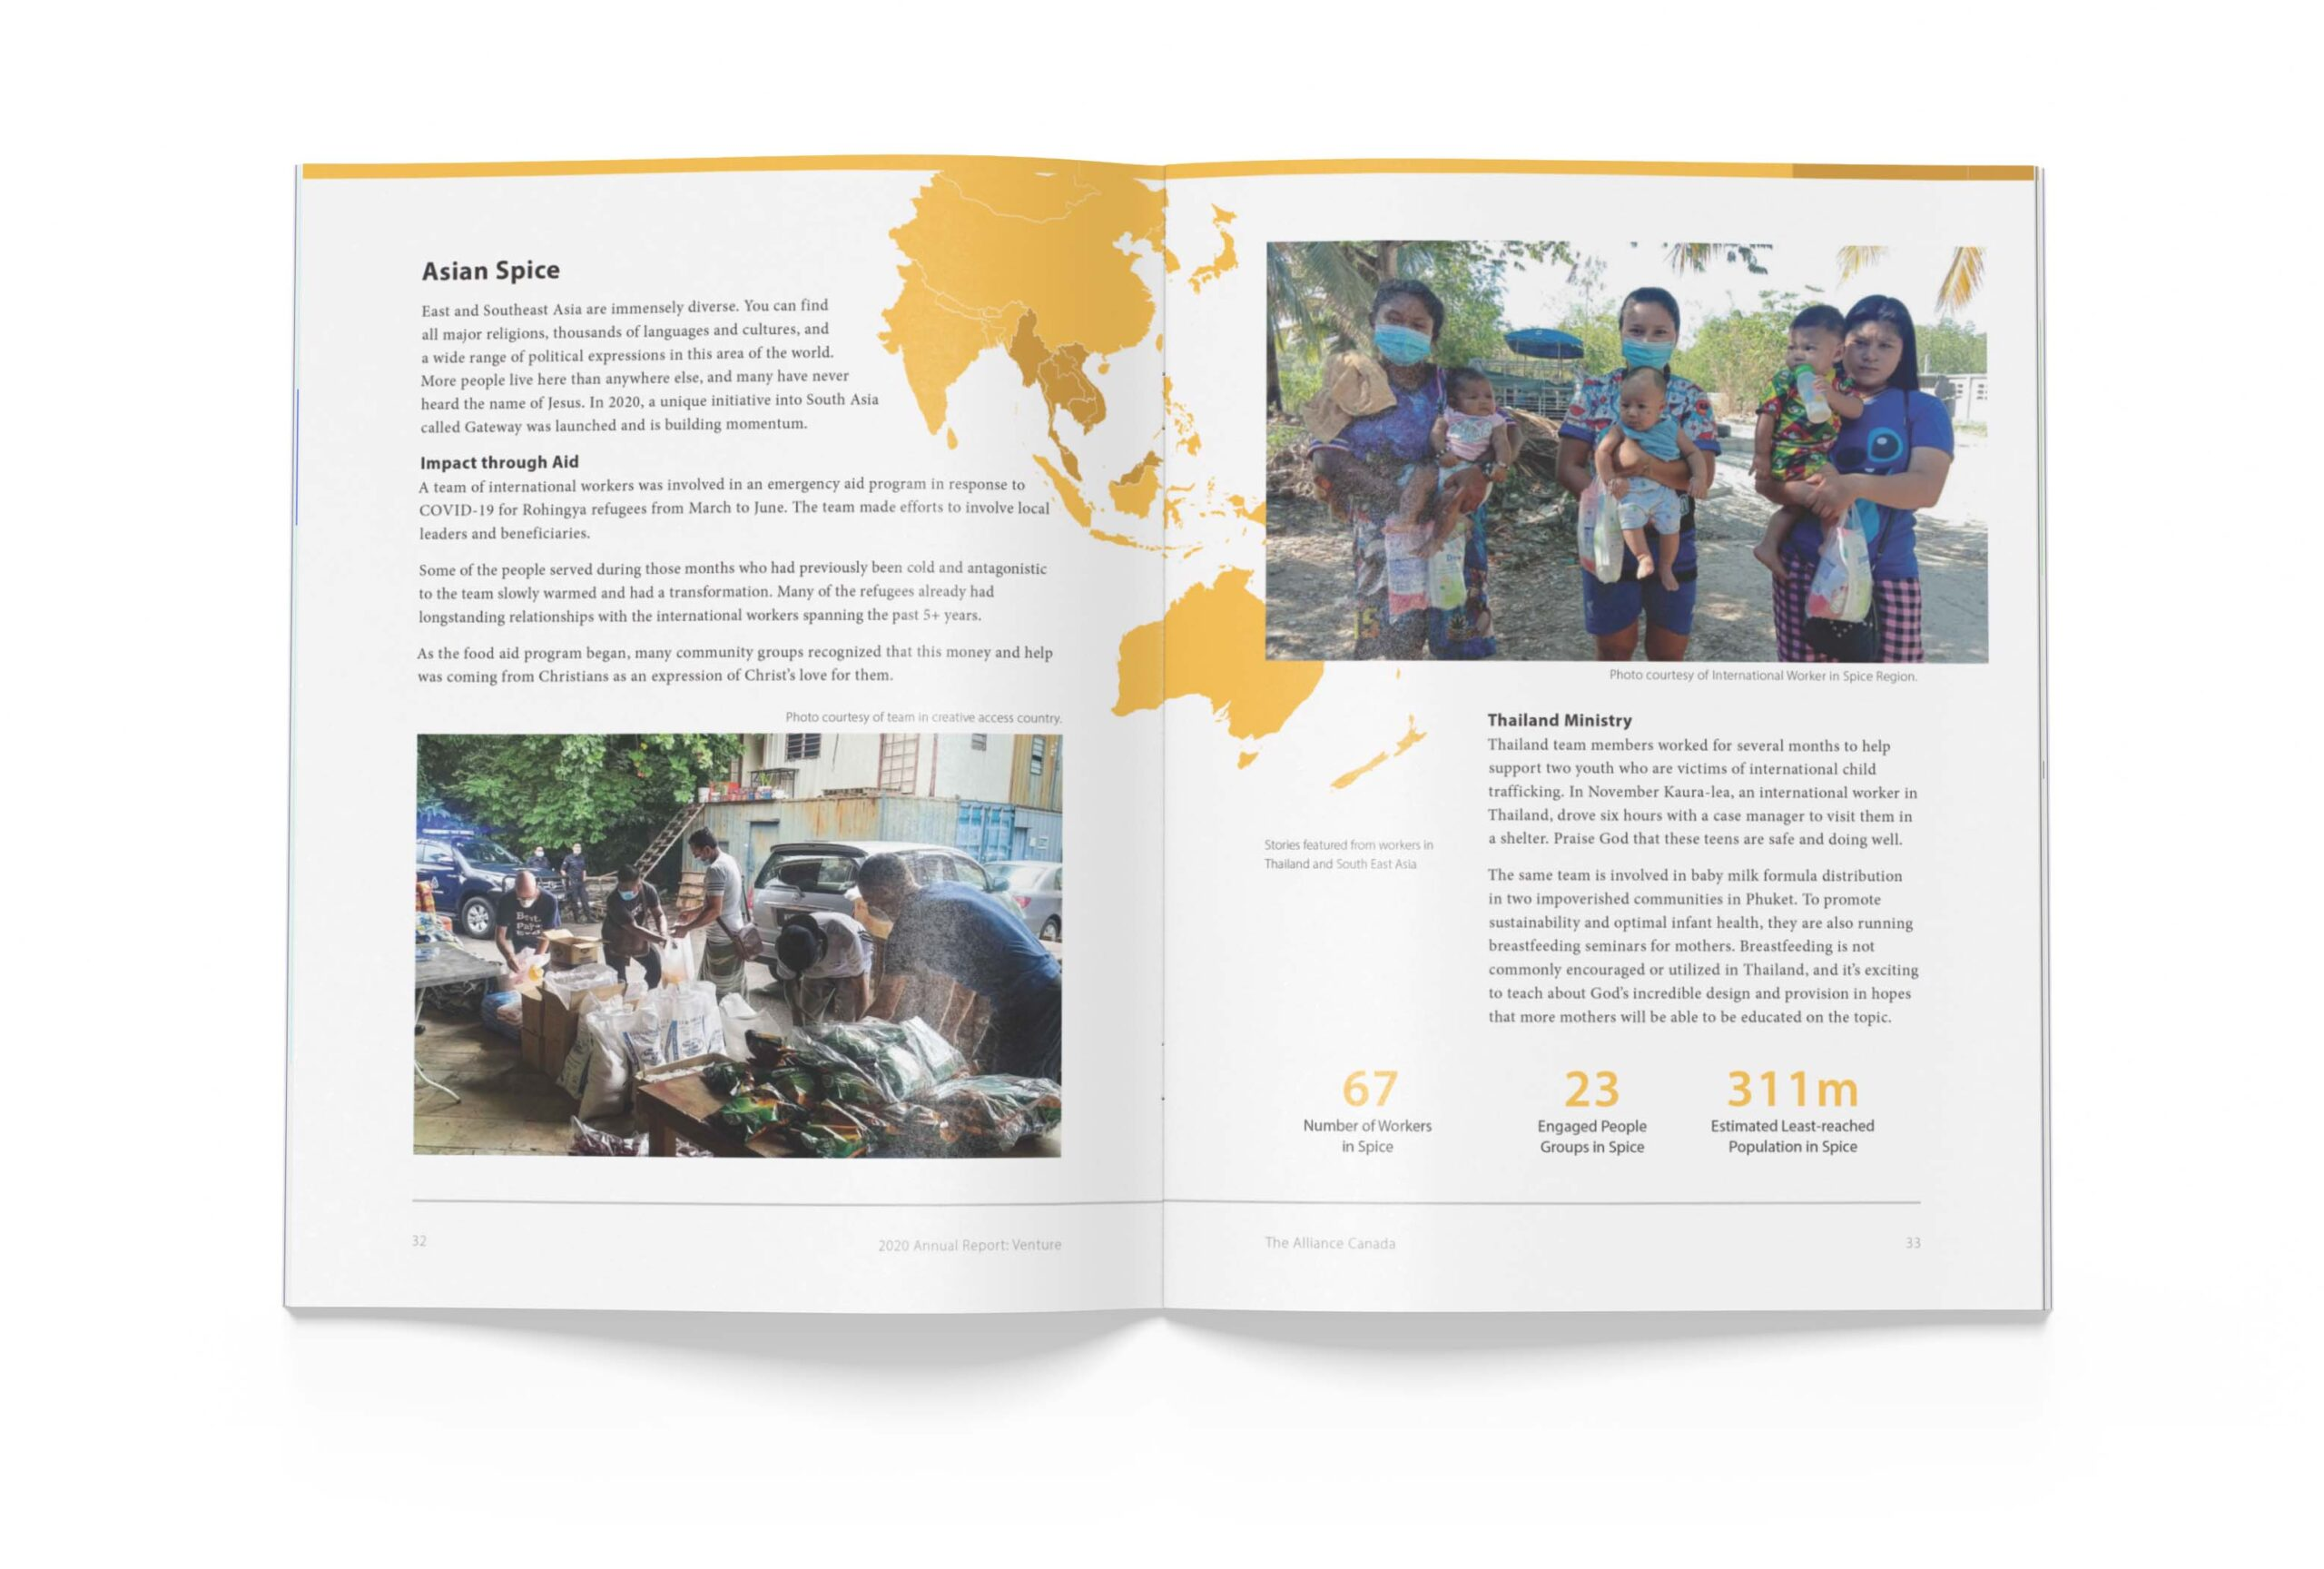 Page 32 of The Alliance Canada 2020 Annual Report